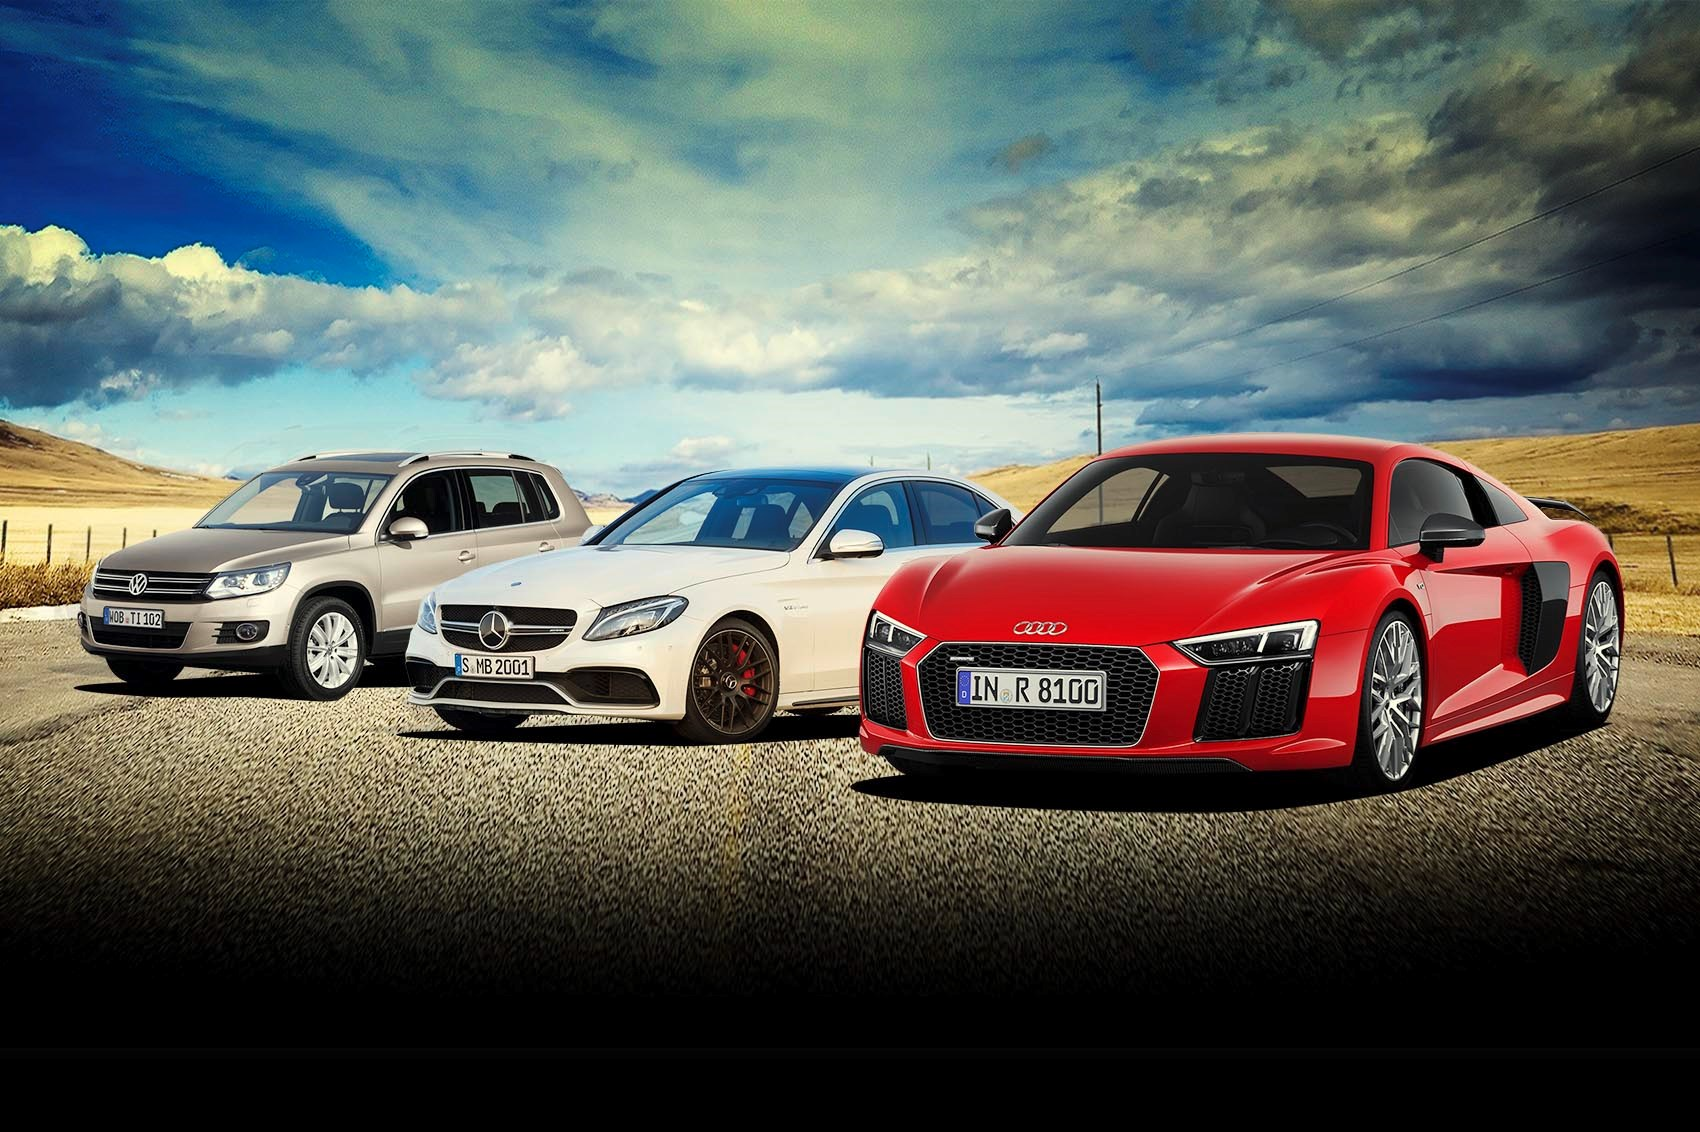 Win an audi r8 mercedes amg c63 and a vw tiguan with car for Win a mercedes benz